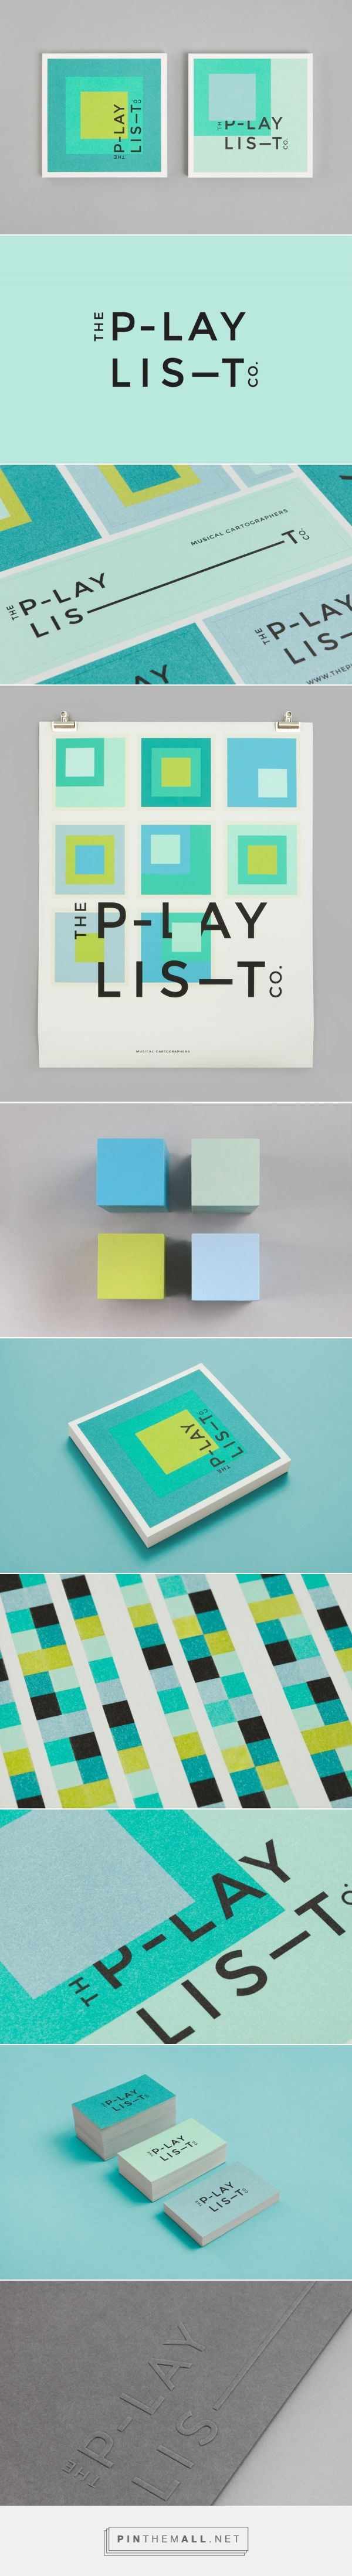 New Brand Identity for The Playlist Co. by Blok